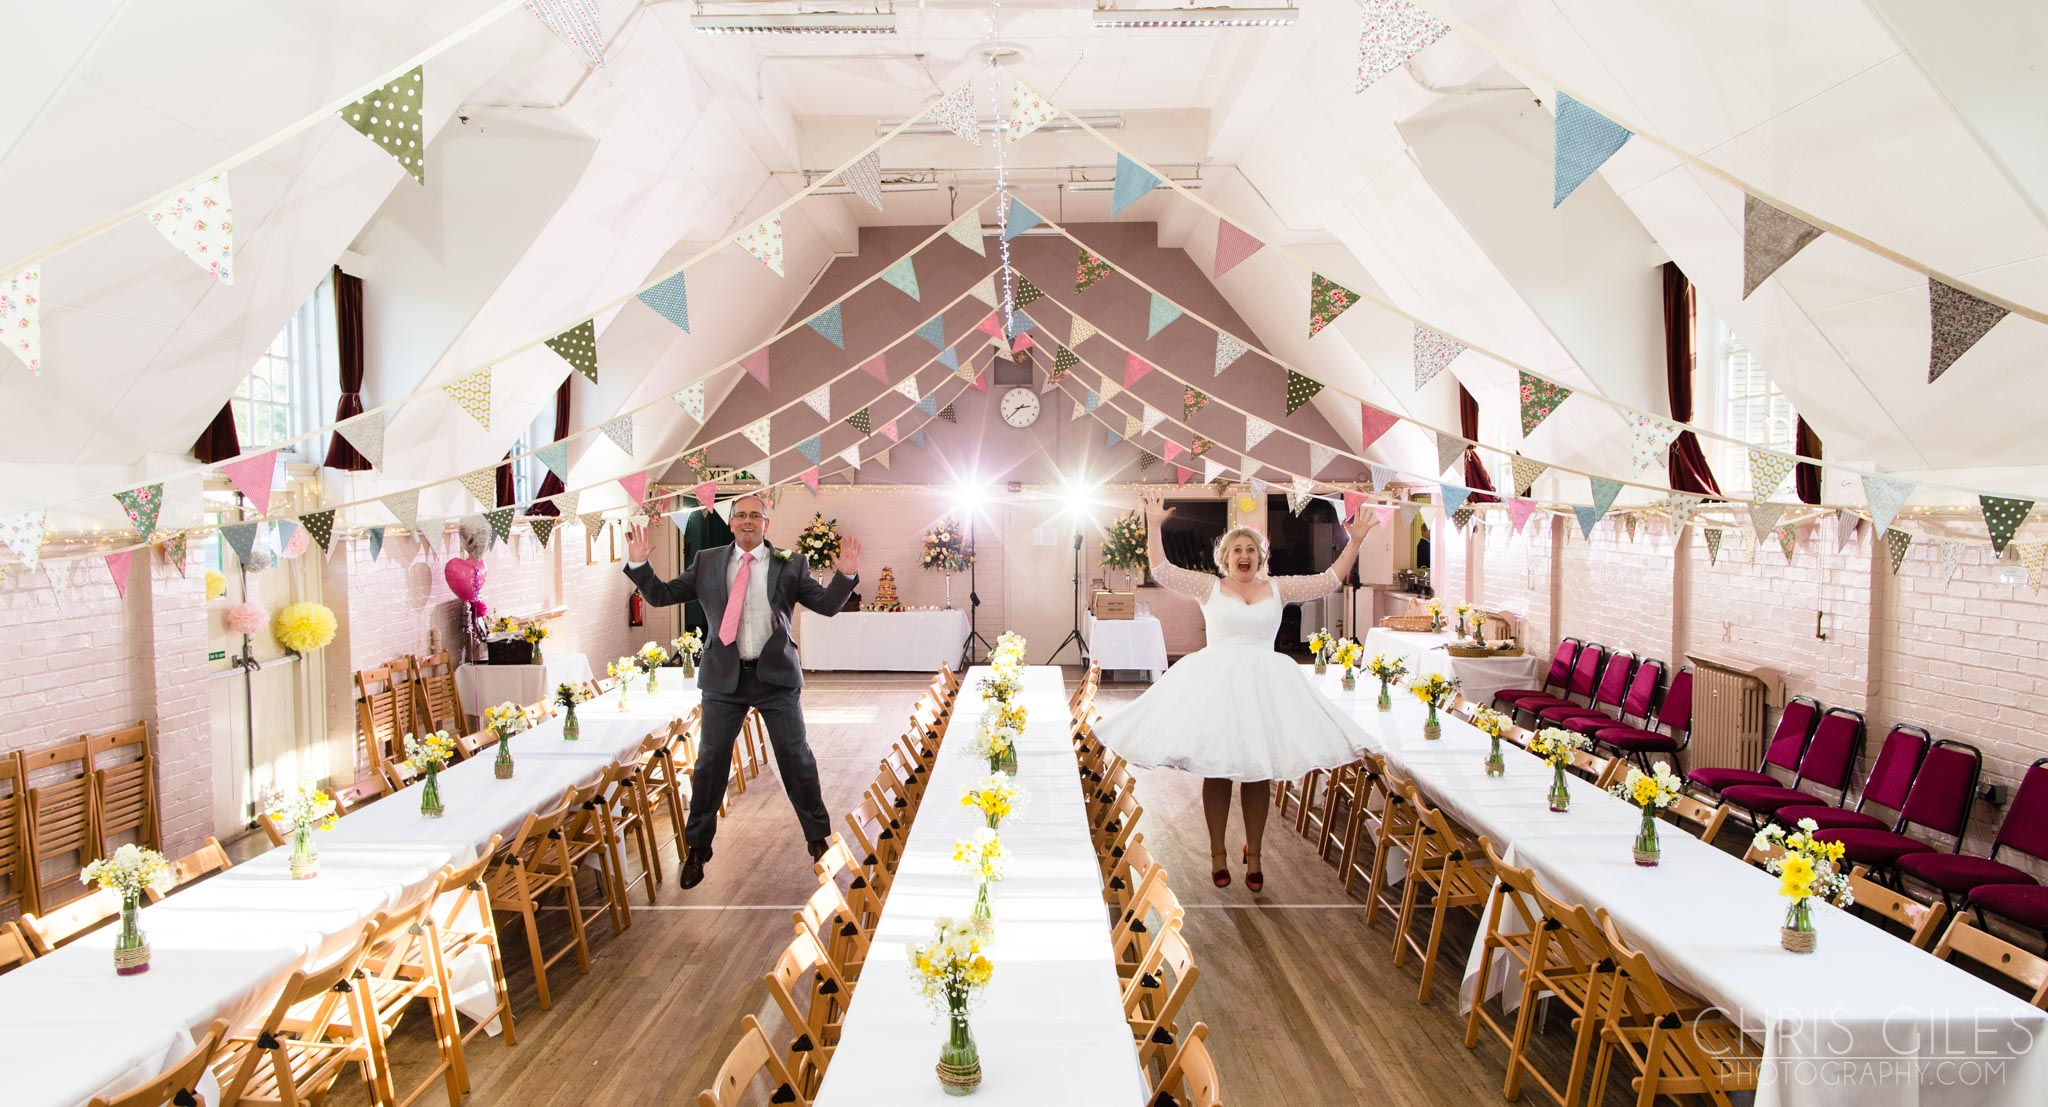 Keston village hall wedding photographer chris giles photography keston village hall wedding junglespirit Images